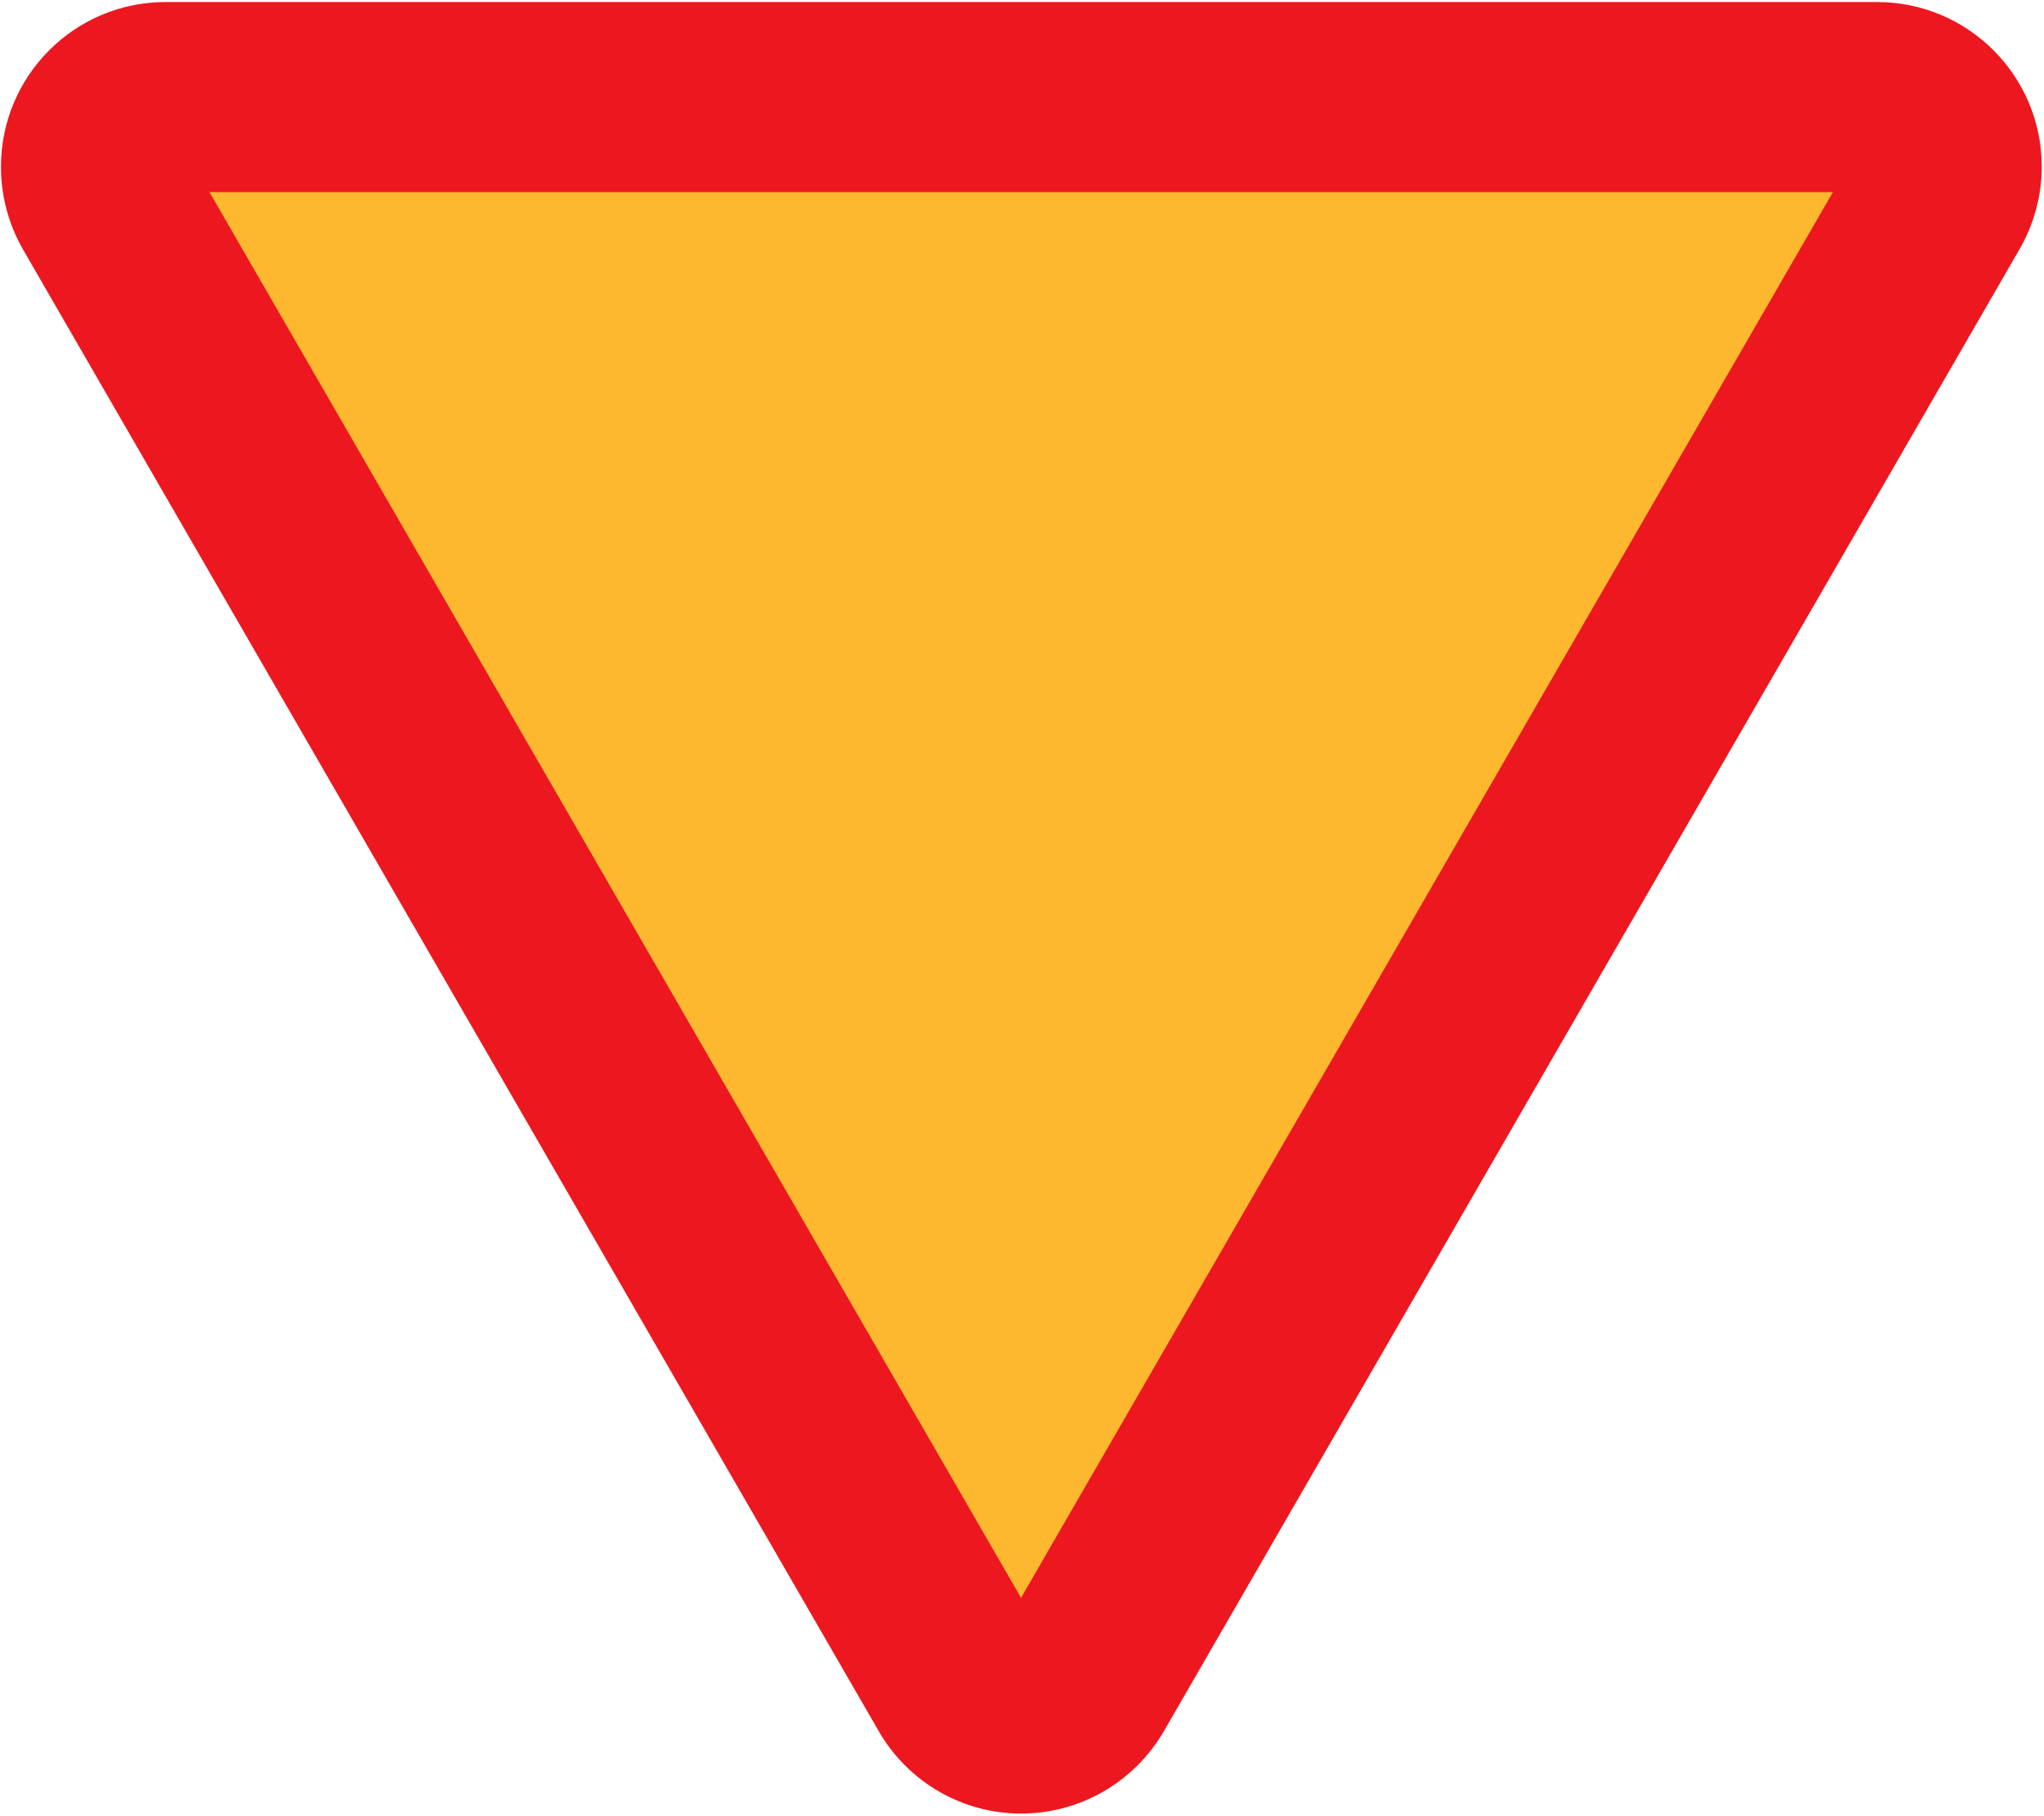 Yield Sign Clipart - ClipArt Best